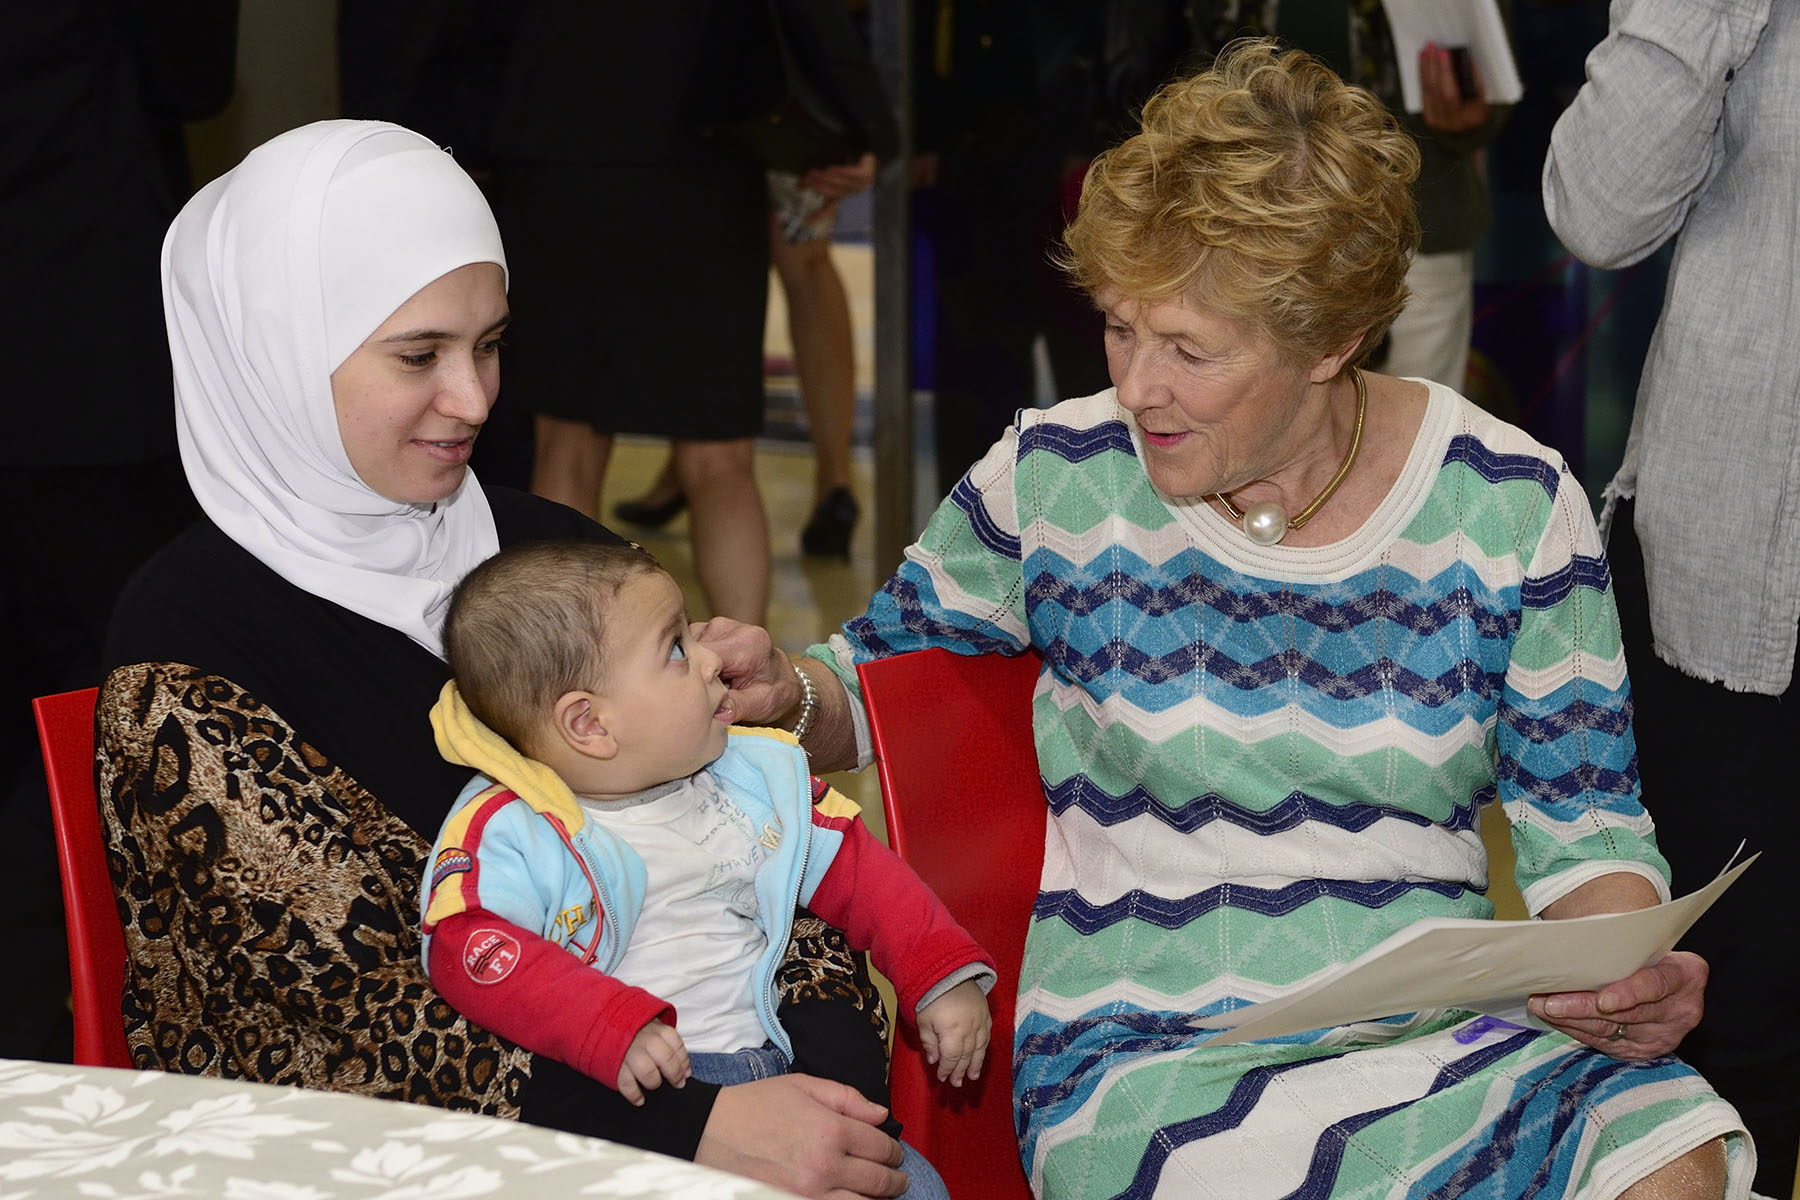 This was an opportunity for Her Excellency to engage with the Syrian refugee families and understand their reality and the challenges they face.